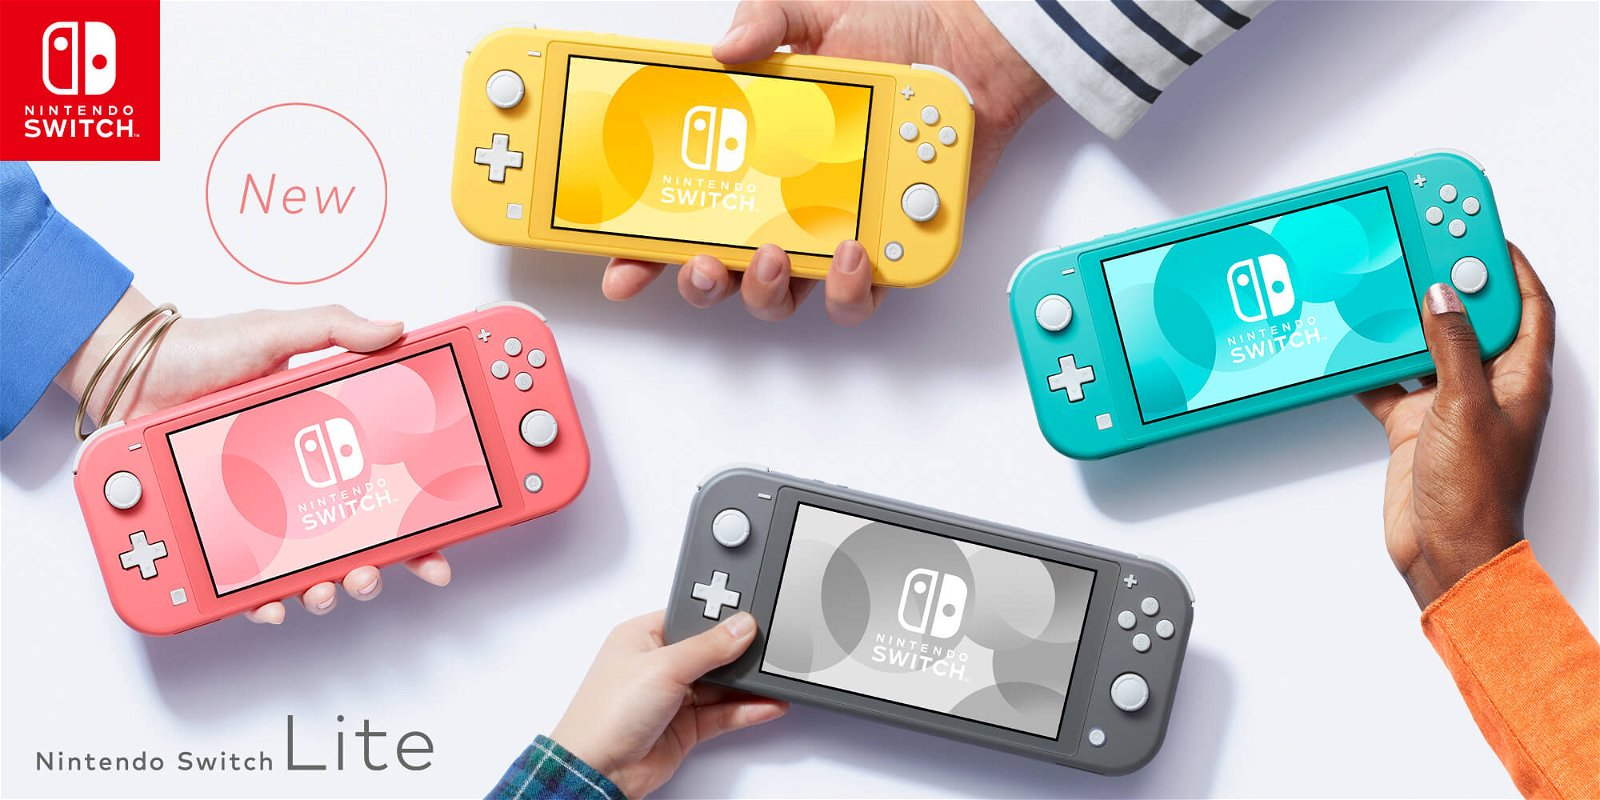 Nintendo: NEW IN! Introducing the coral Nintendo Switch Lite | Milled